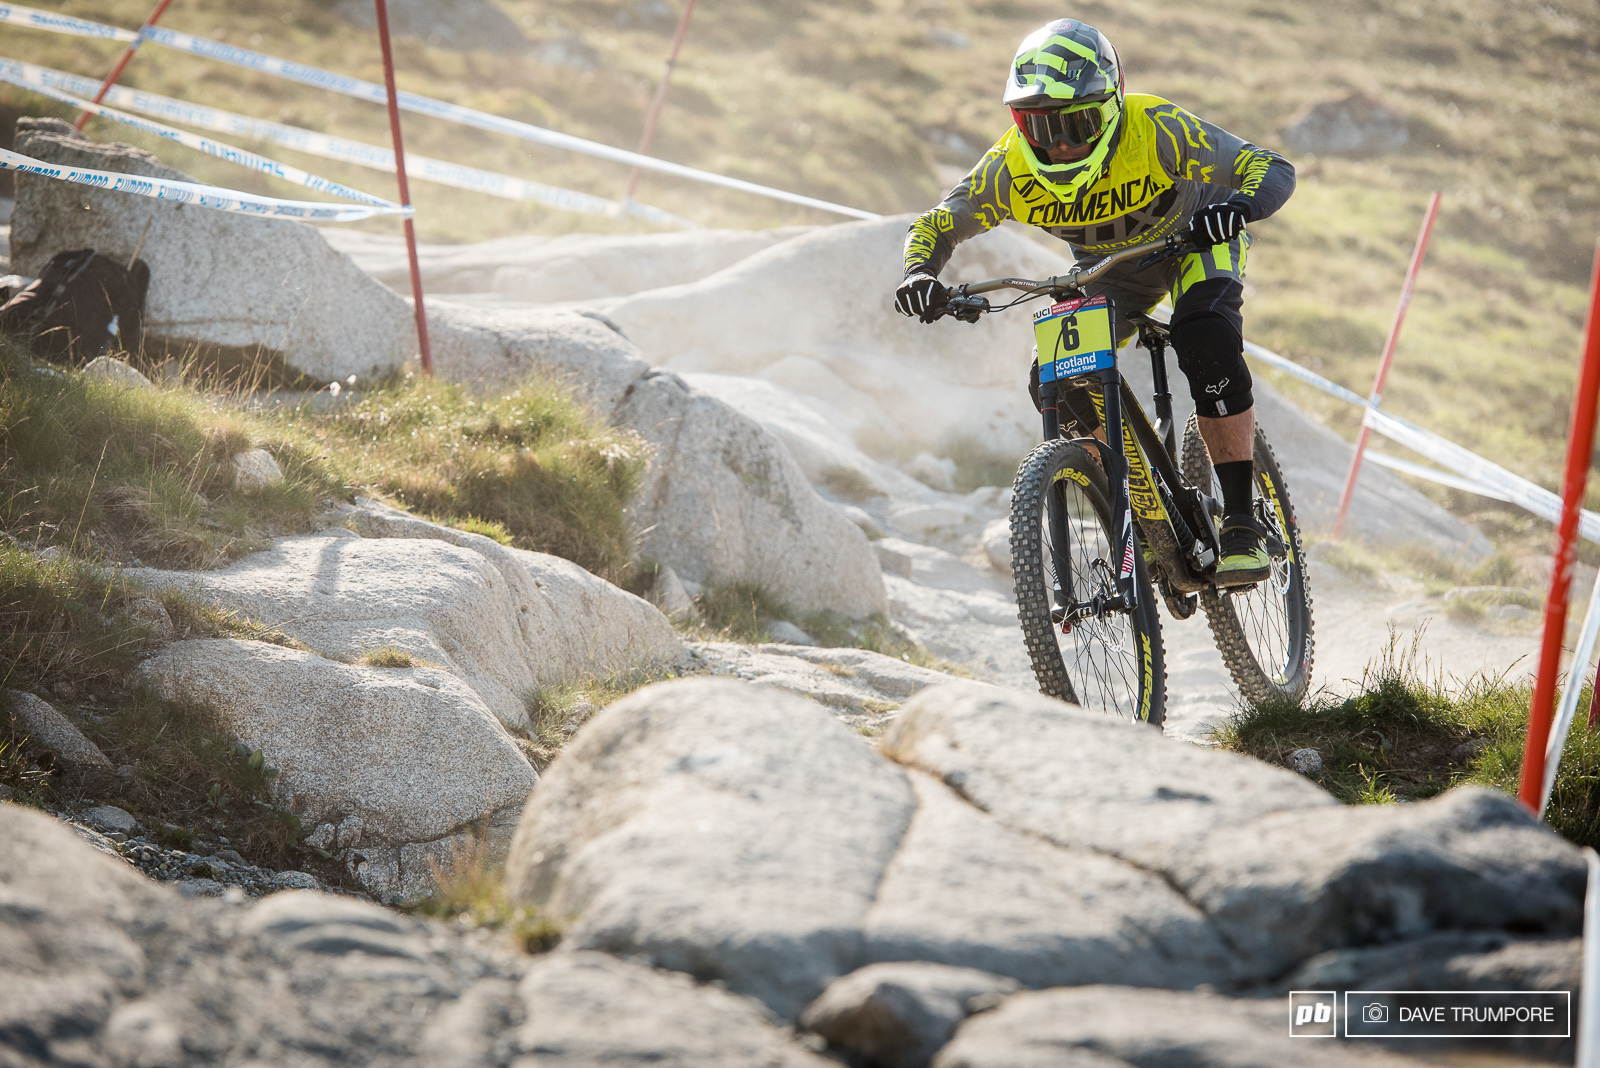 Gaetan Vige finally lived up to all that potential taking 2nd in Junior Men.